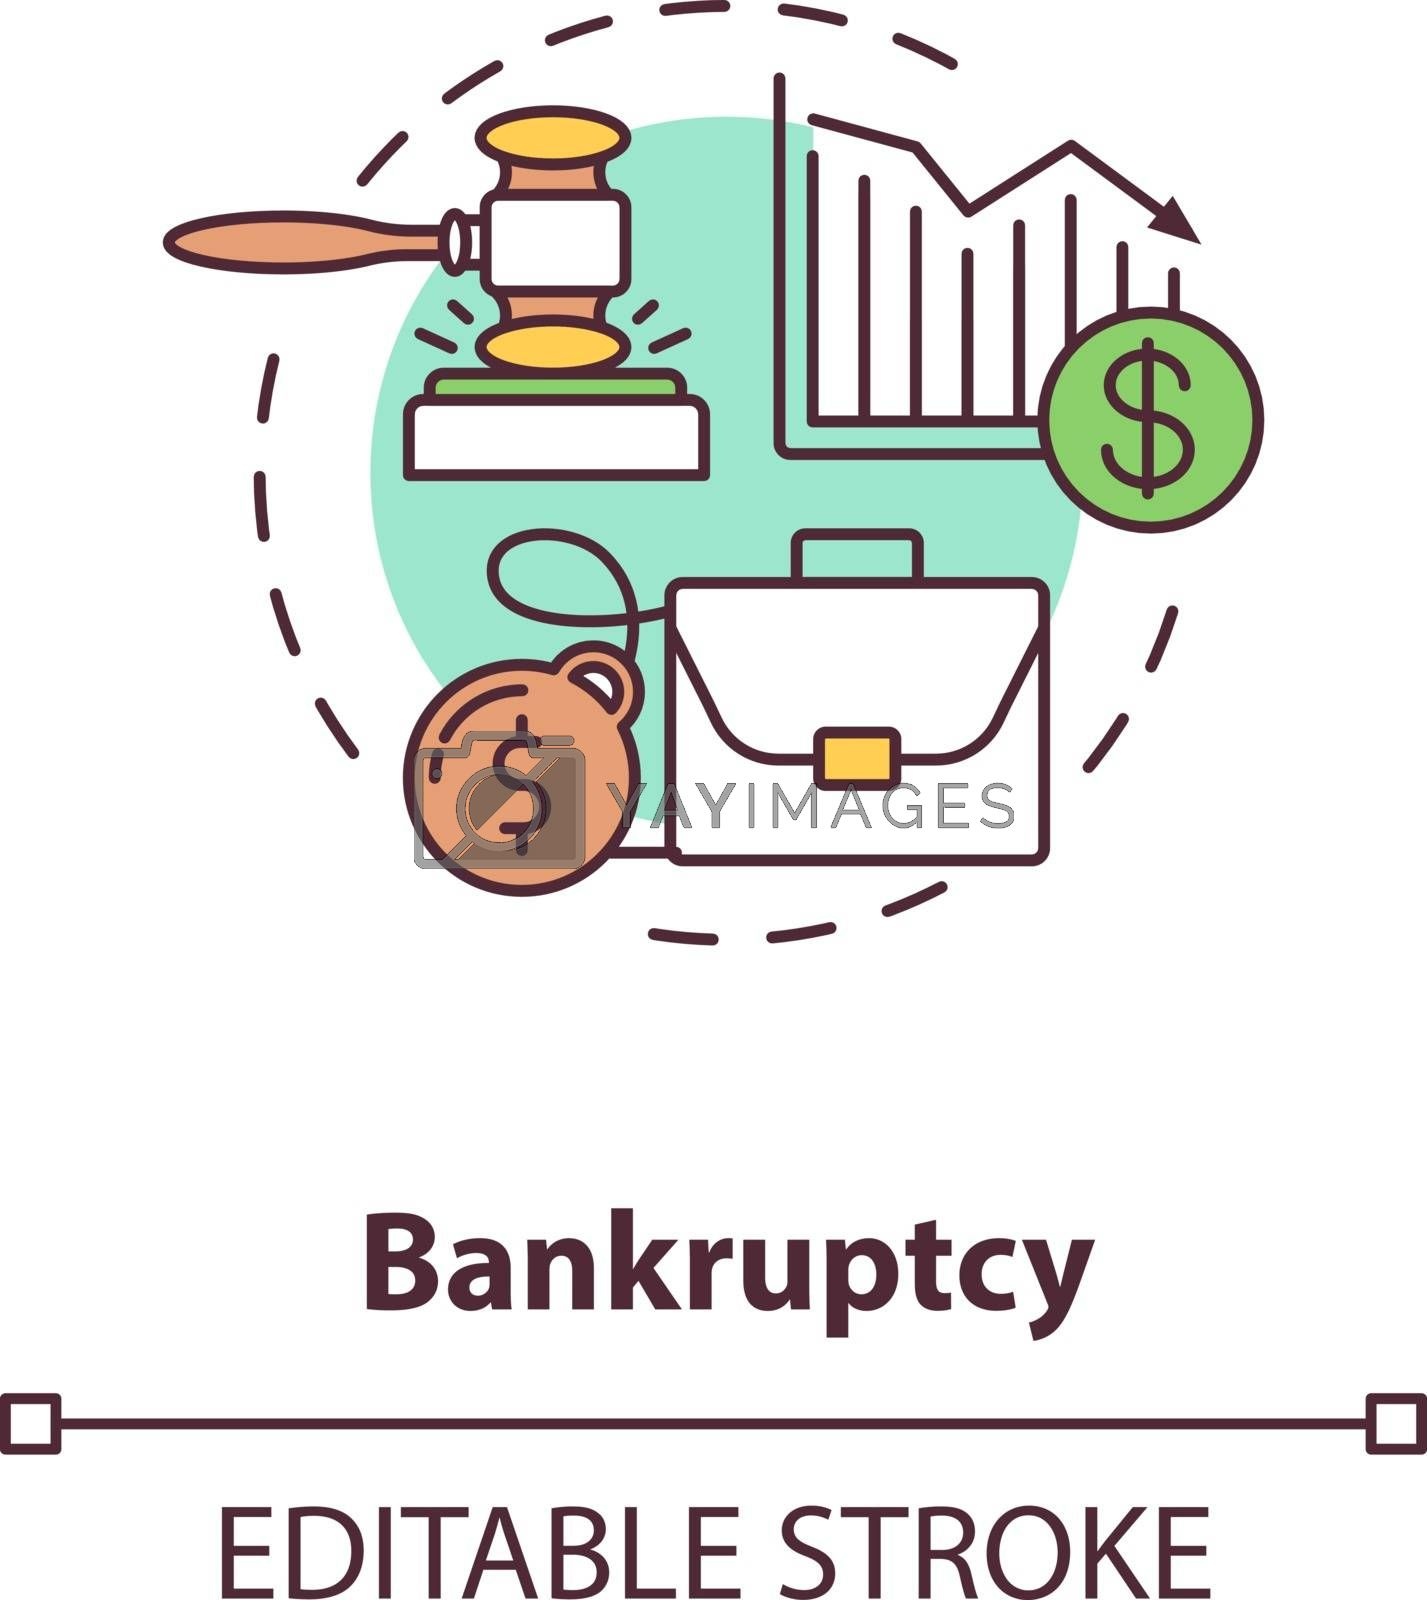 Bankruptcy concept icon. Company loss. Business recession. Economic crisis. Financial management problem idea thin line illustration. Vector isolated outline RGB color drawing. Editable stroke